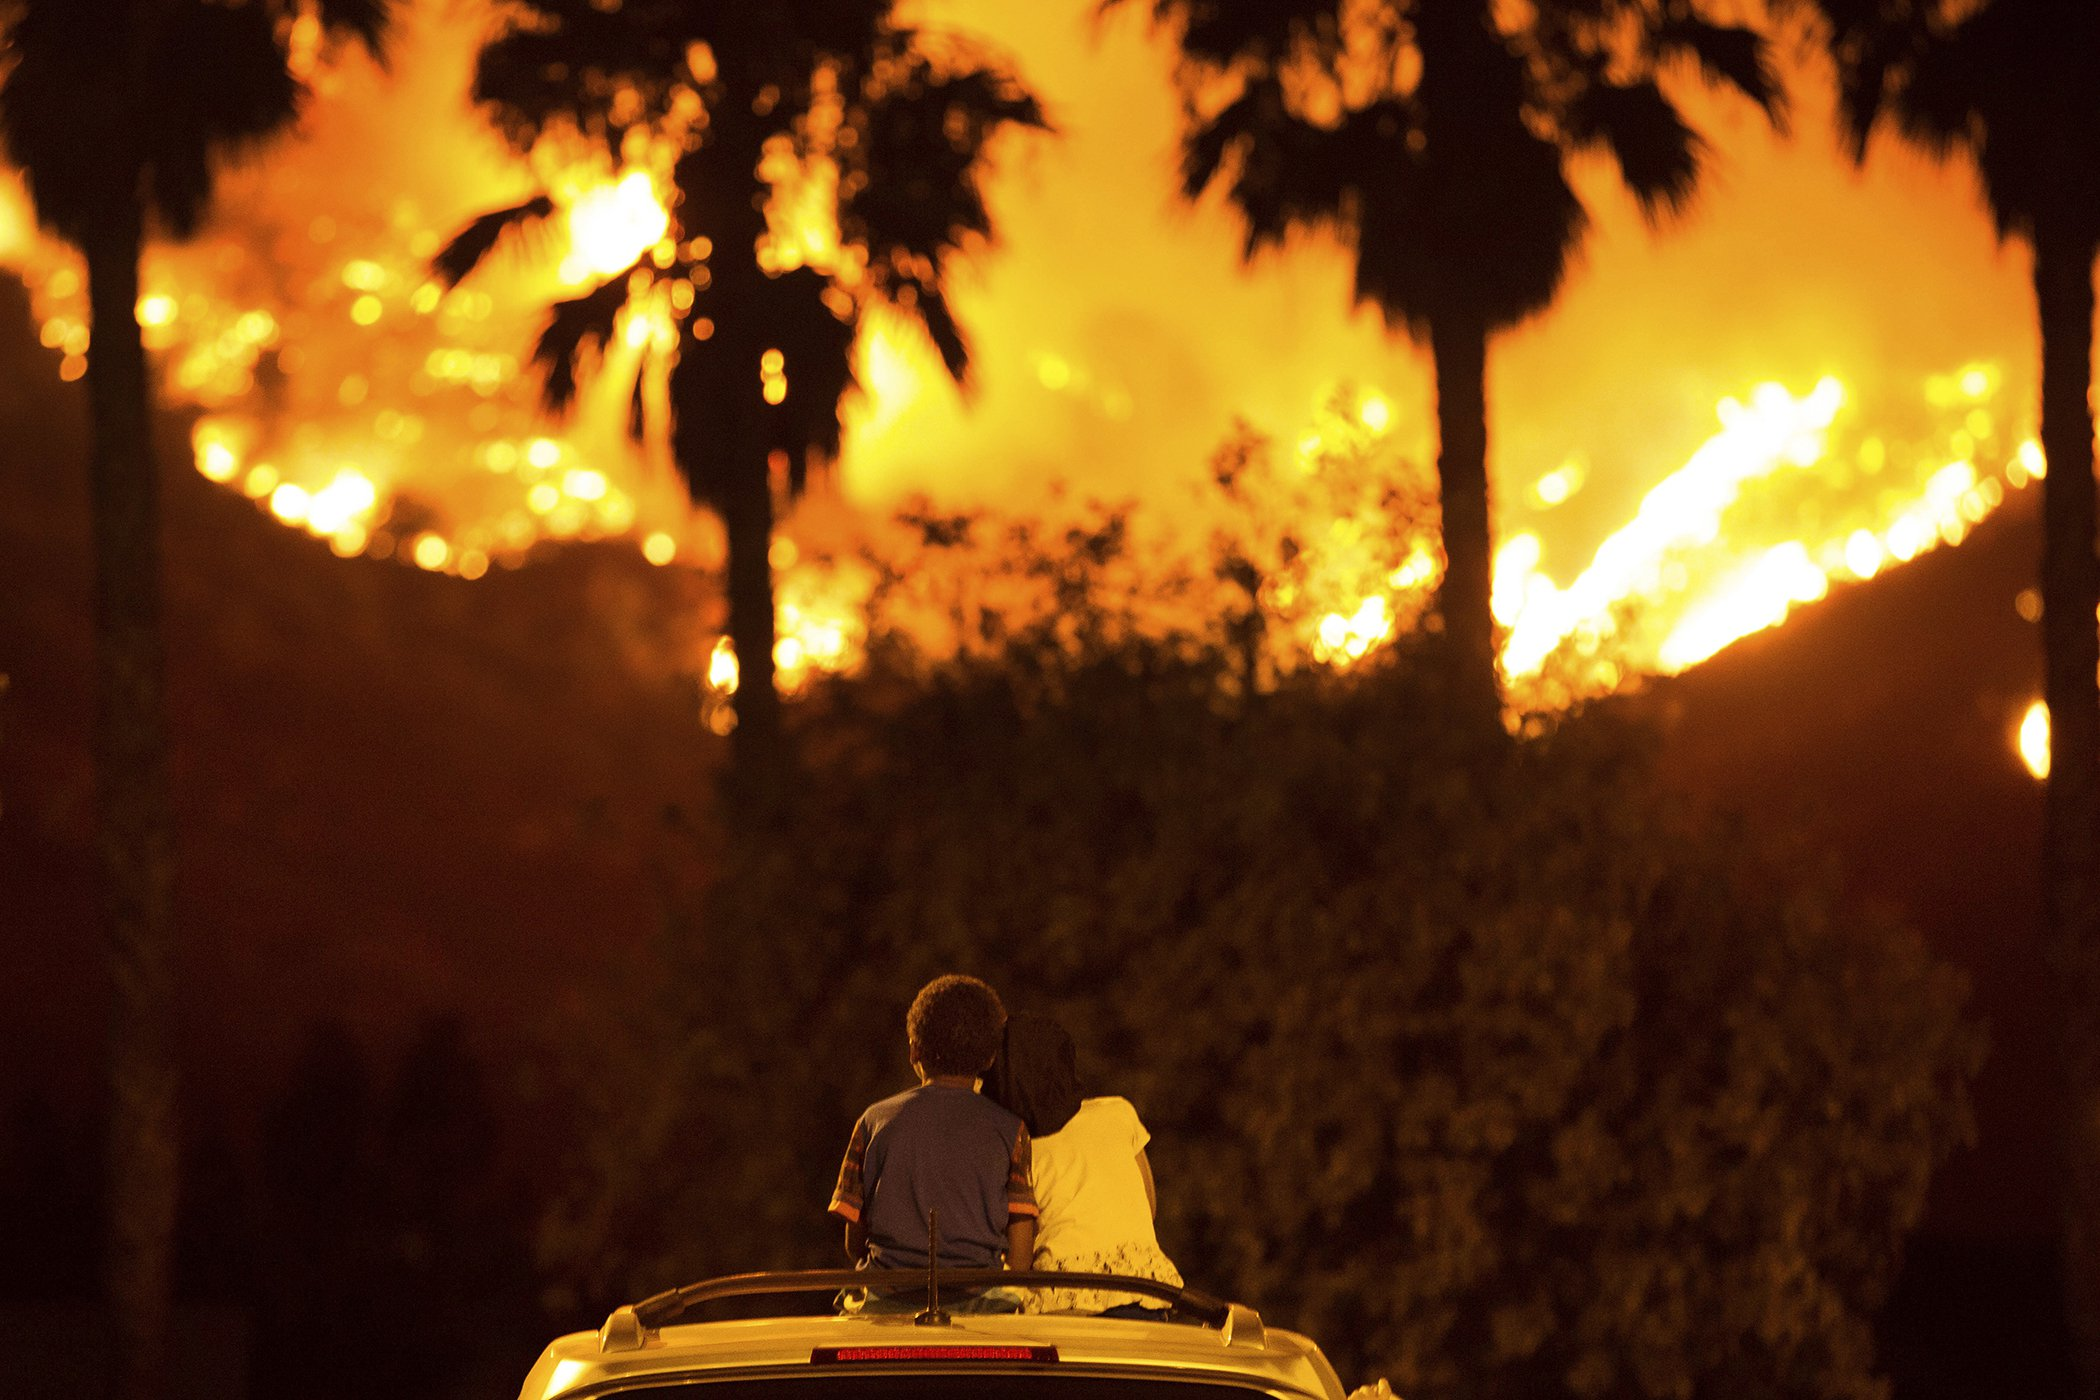 Environmental-Photos-August-California-Wildfire-Climate-Change.jpg